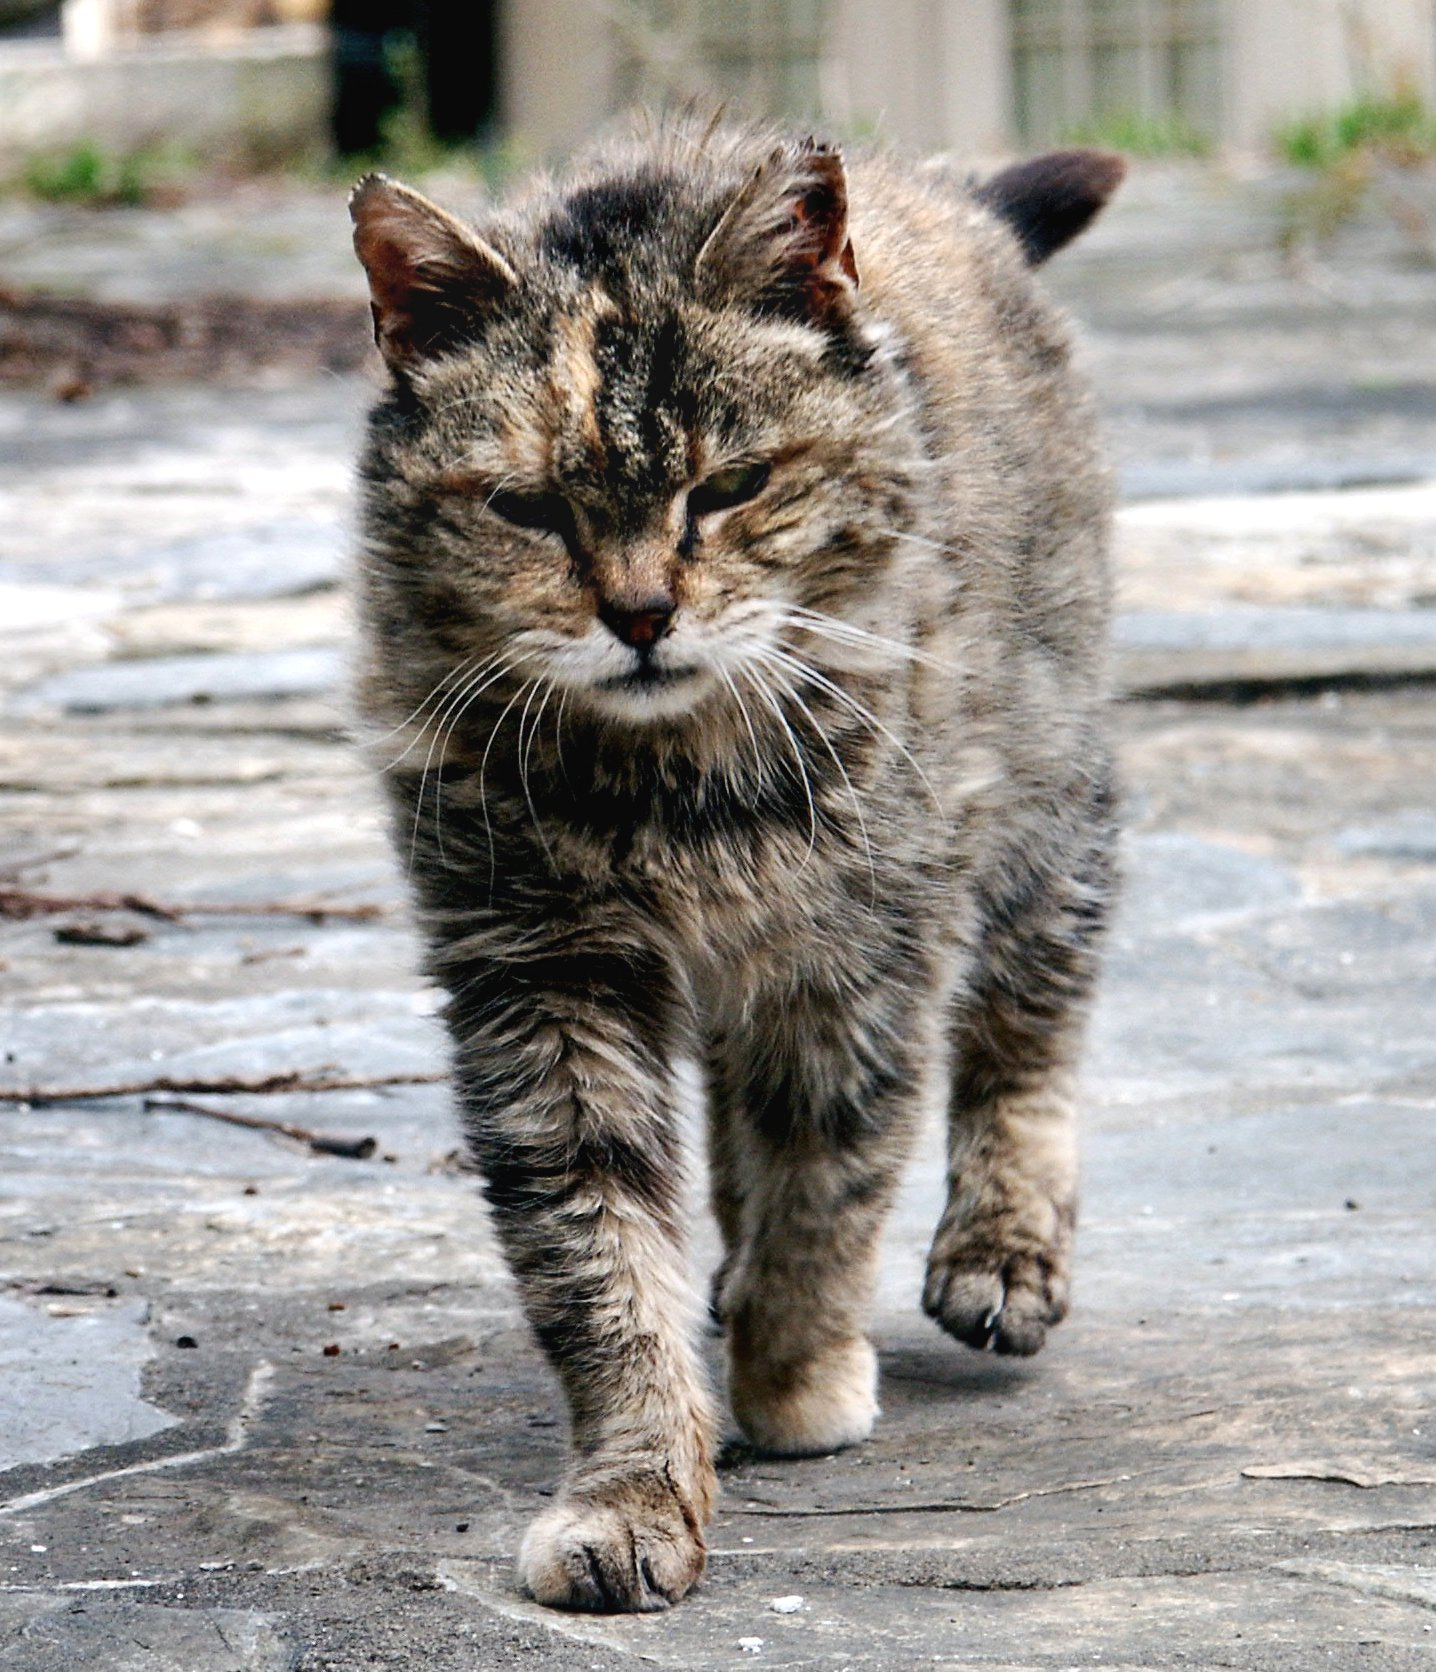 signs of fall #3: feral cats | ecologist's notebook